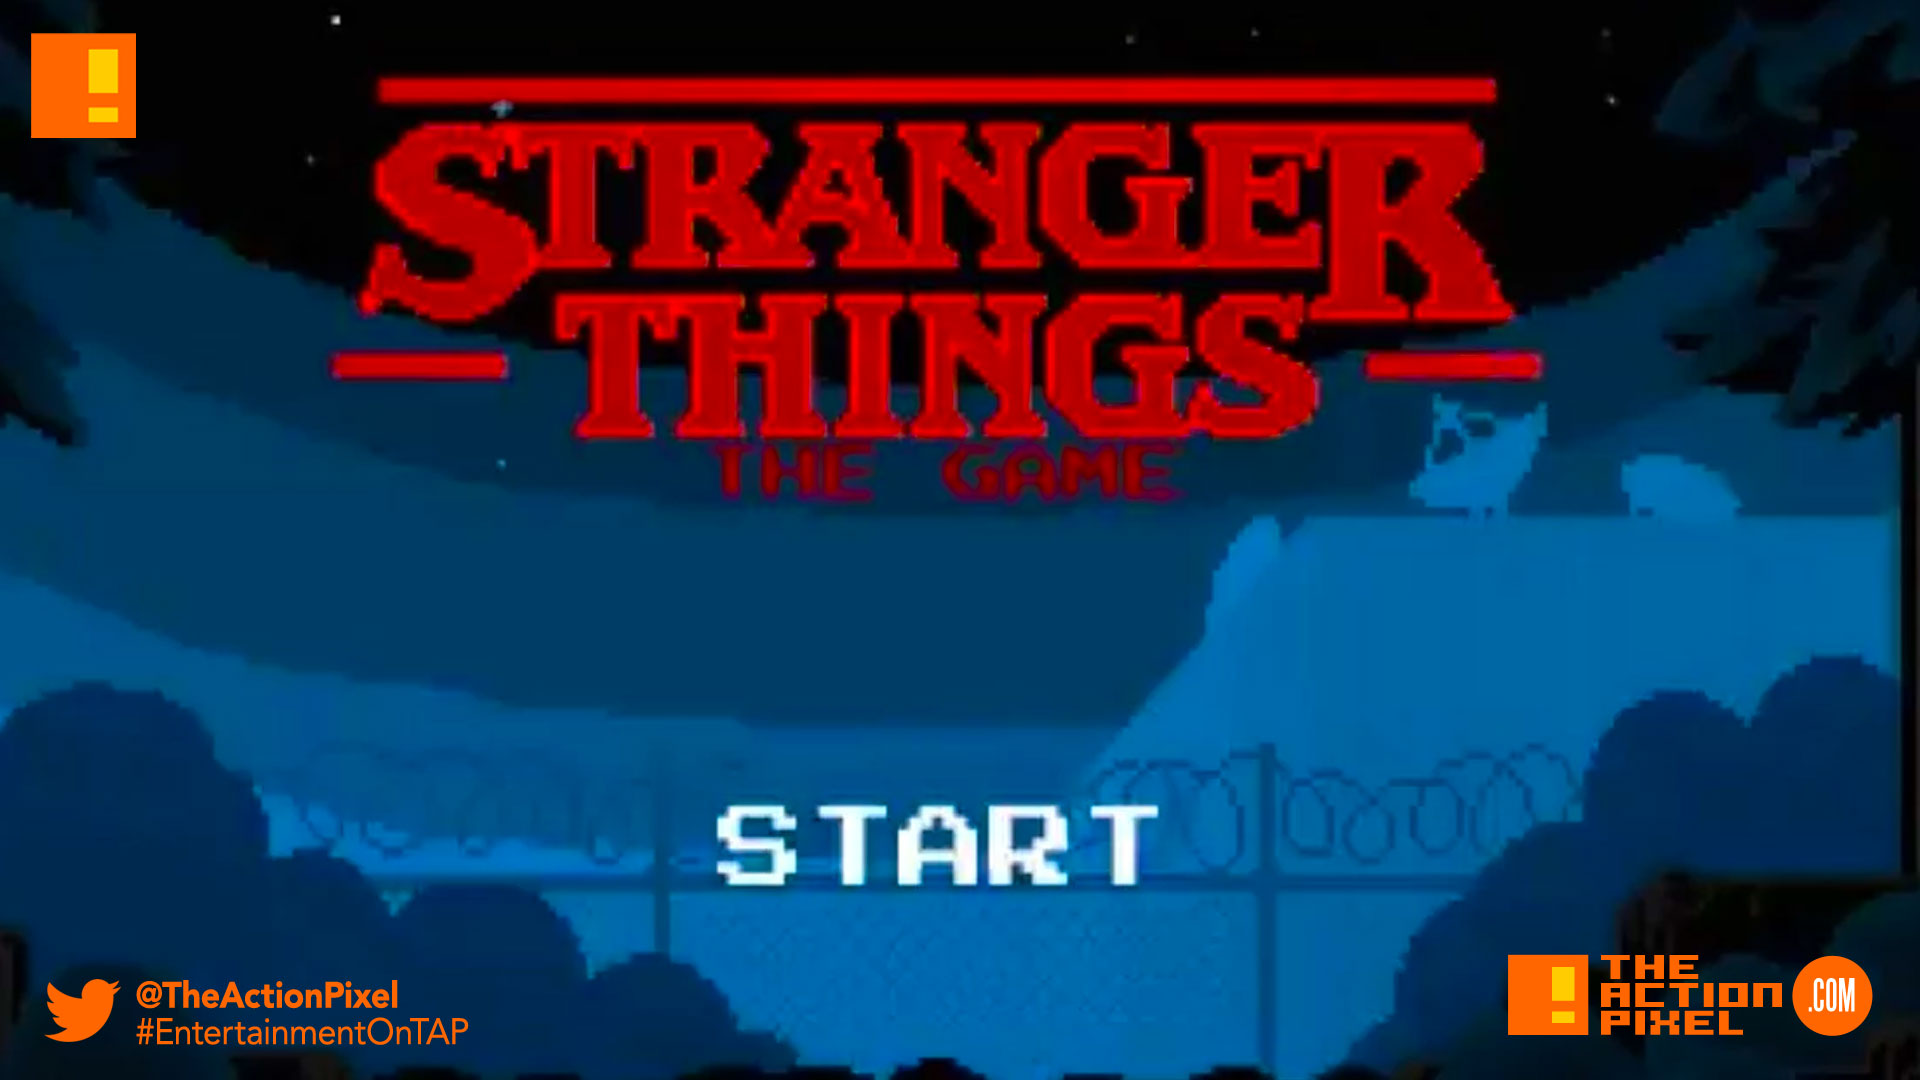 stranger things, mobile game, stranger things: the game, bonus xp, netflix,8-bit,pixel, roleplaying,mobile game,the action pixel, entertainment on tap